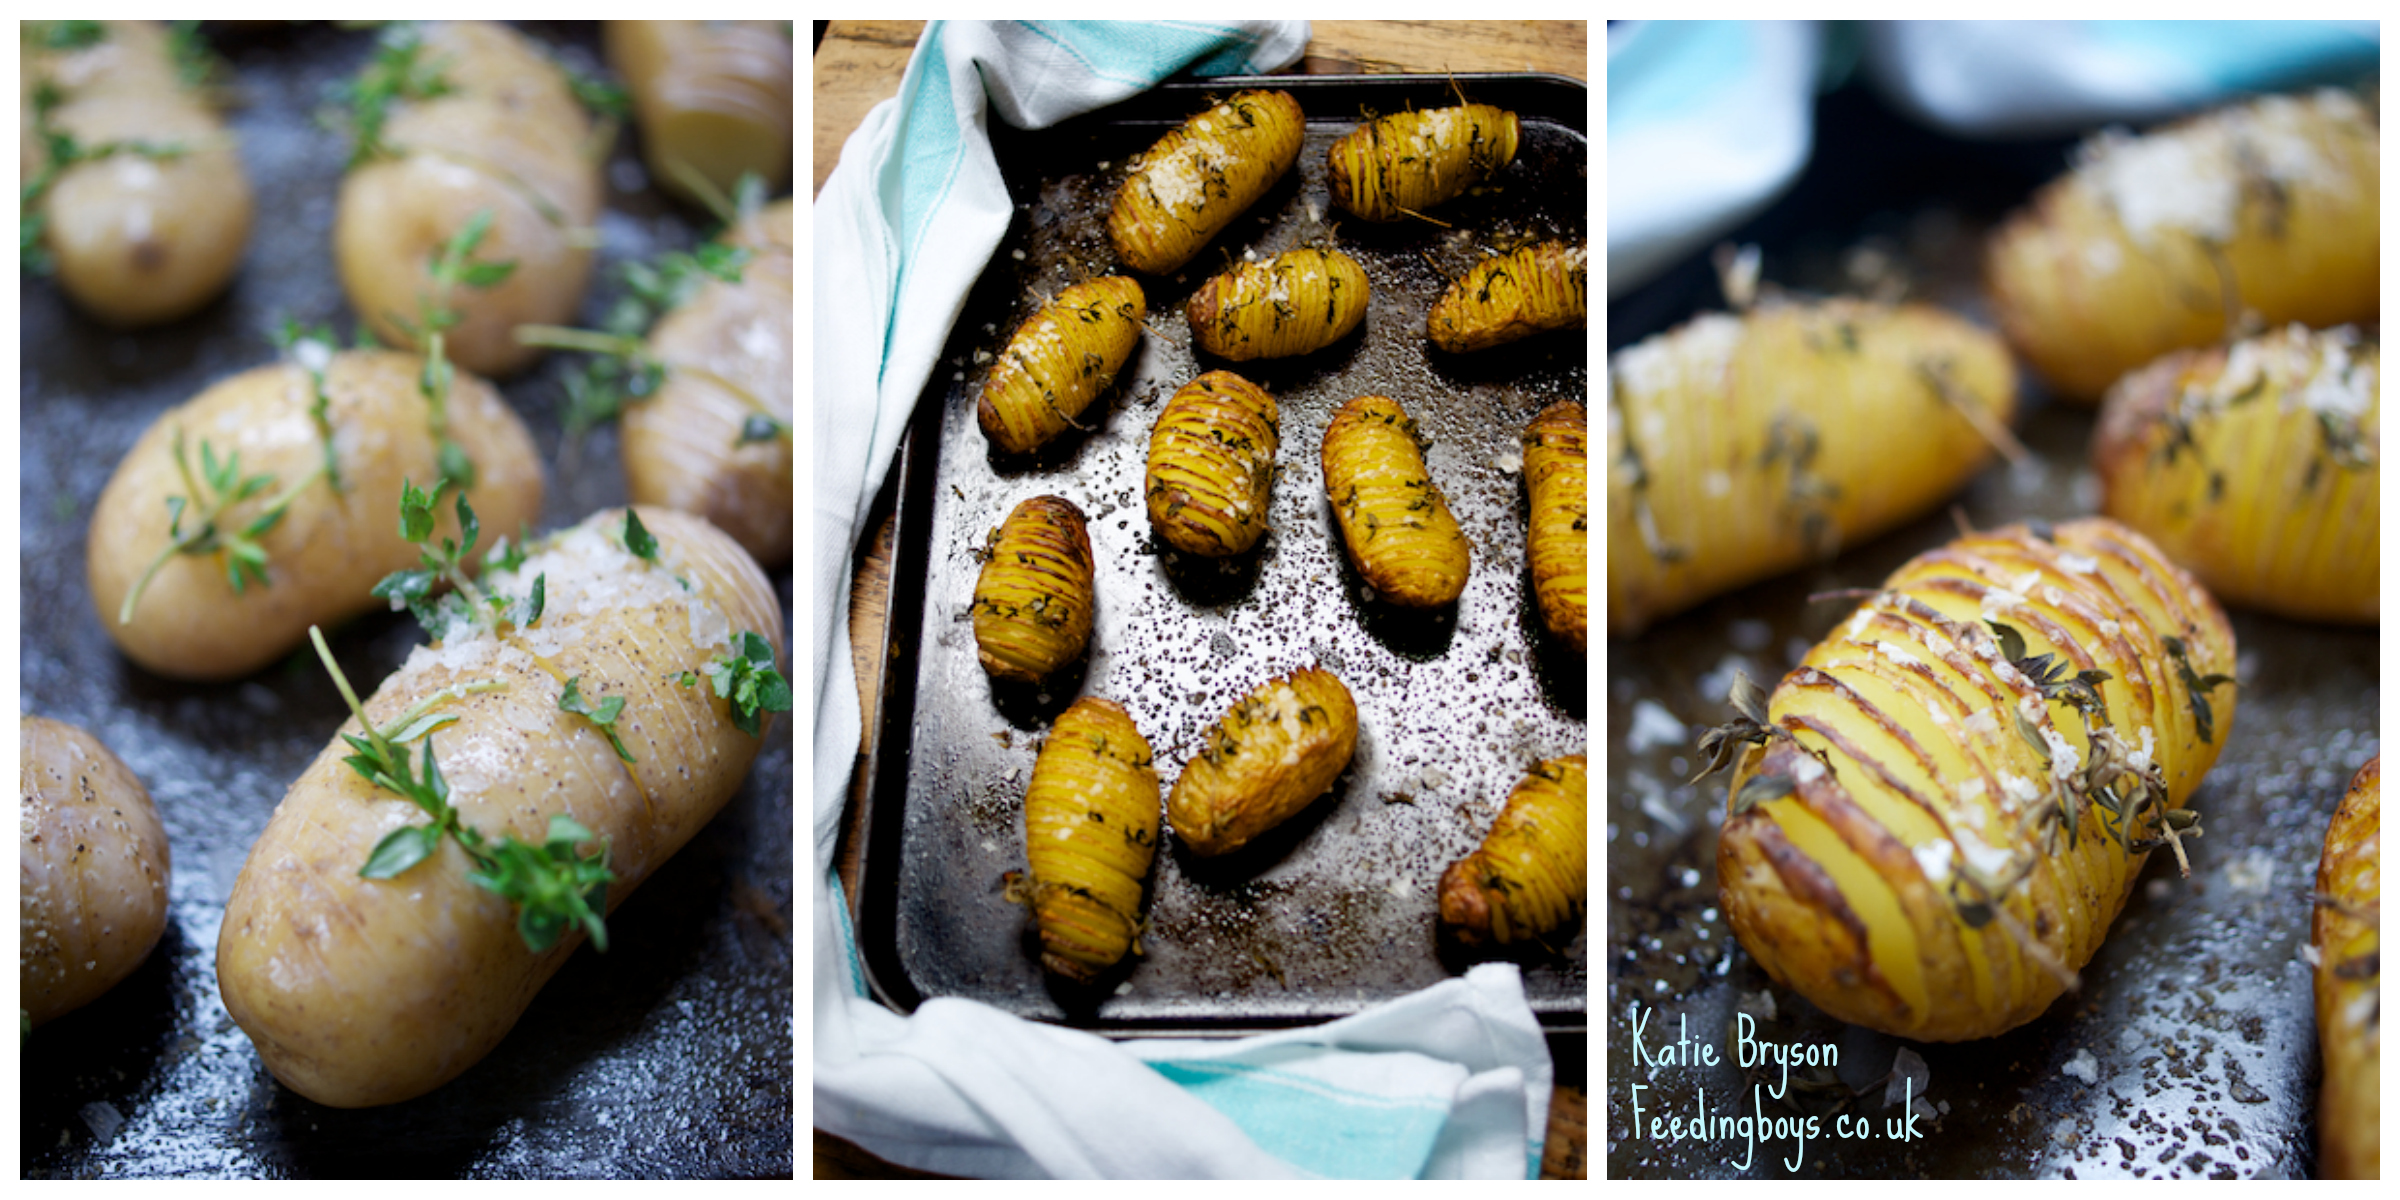 Fancy roasted potatoes - photo by Katie Bryson